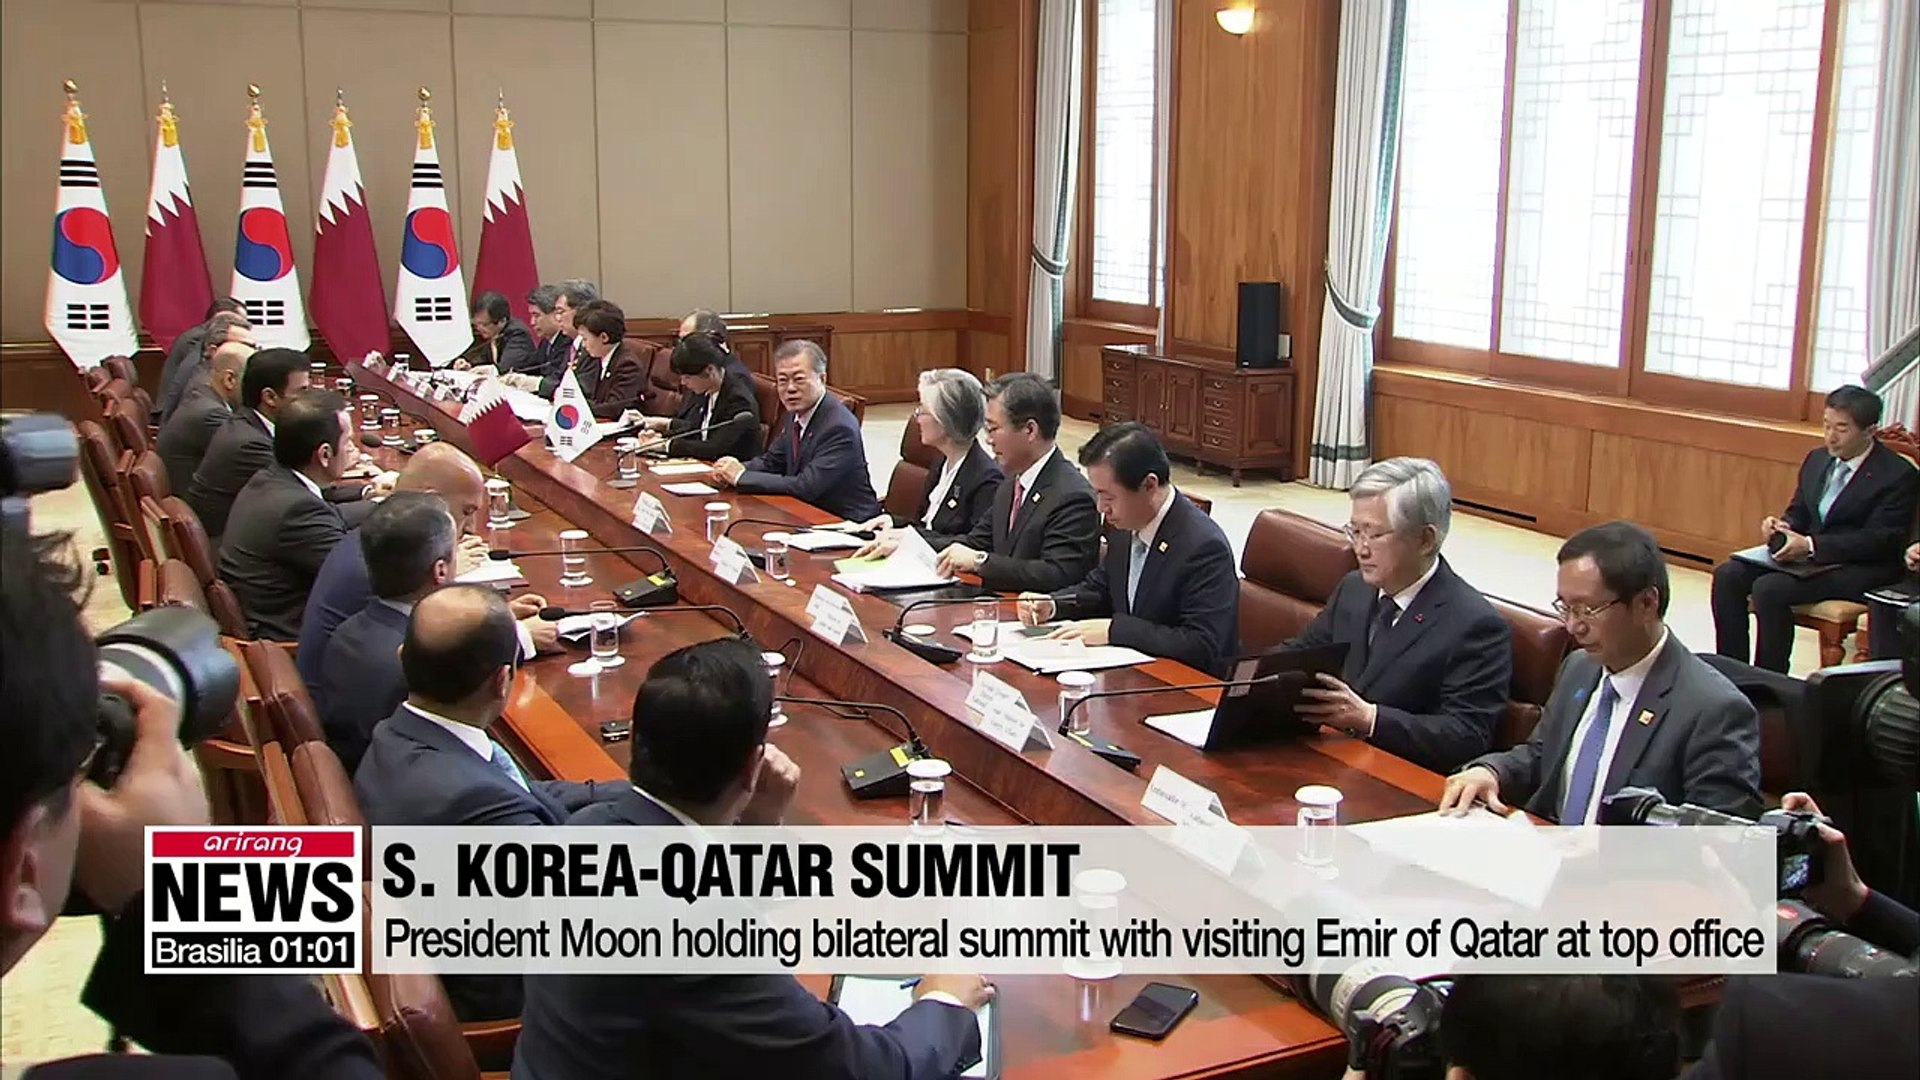 President Moon holding bilateral summit with visiting Emir of Qatar at top office